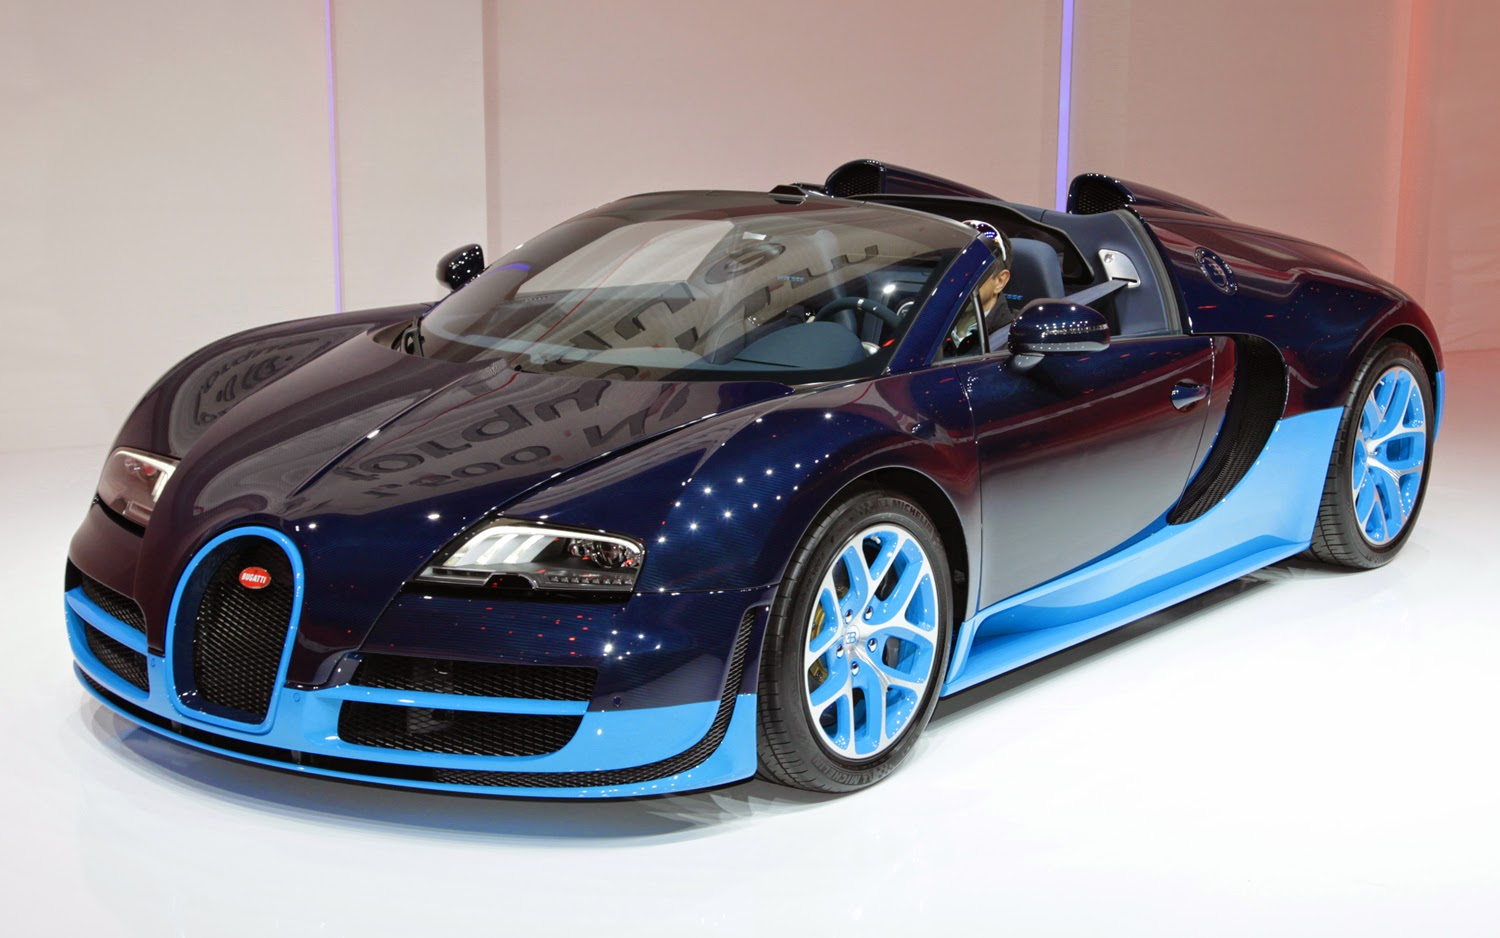 download Bugatti Veyron 16.4 Grand Sport Vitesse- Expensive Car